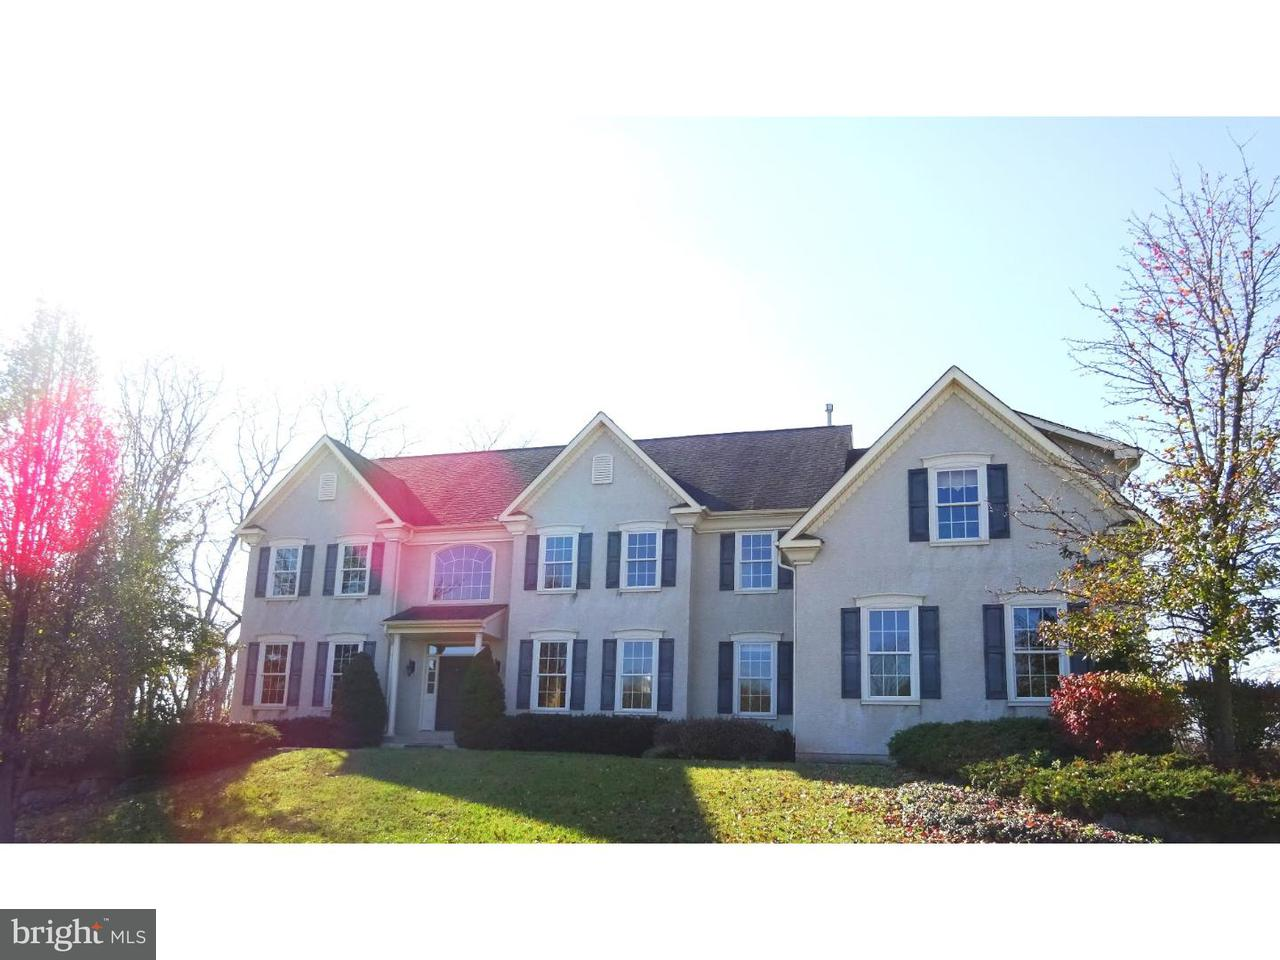 Single Family Home for Sale at 16 LEAF CREEK Court Douglassville, Pennsylvania 19518 United States